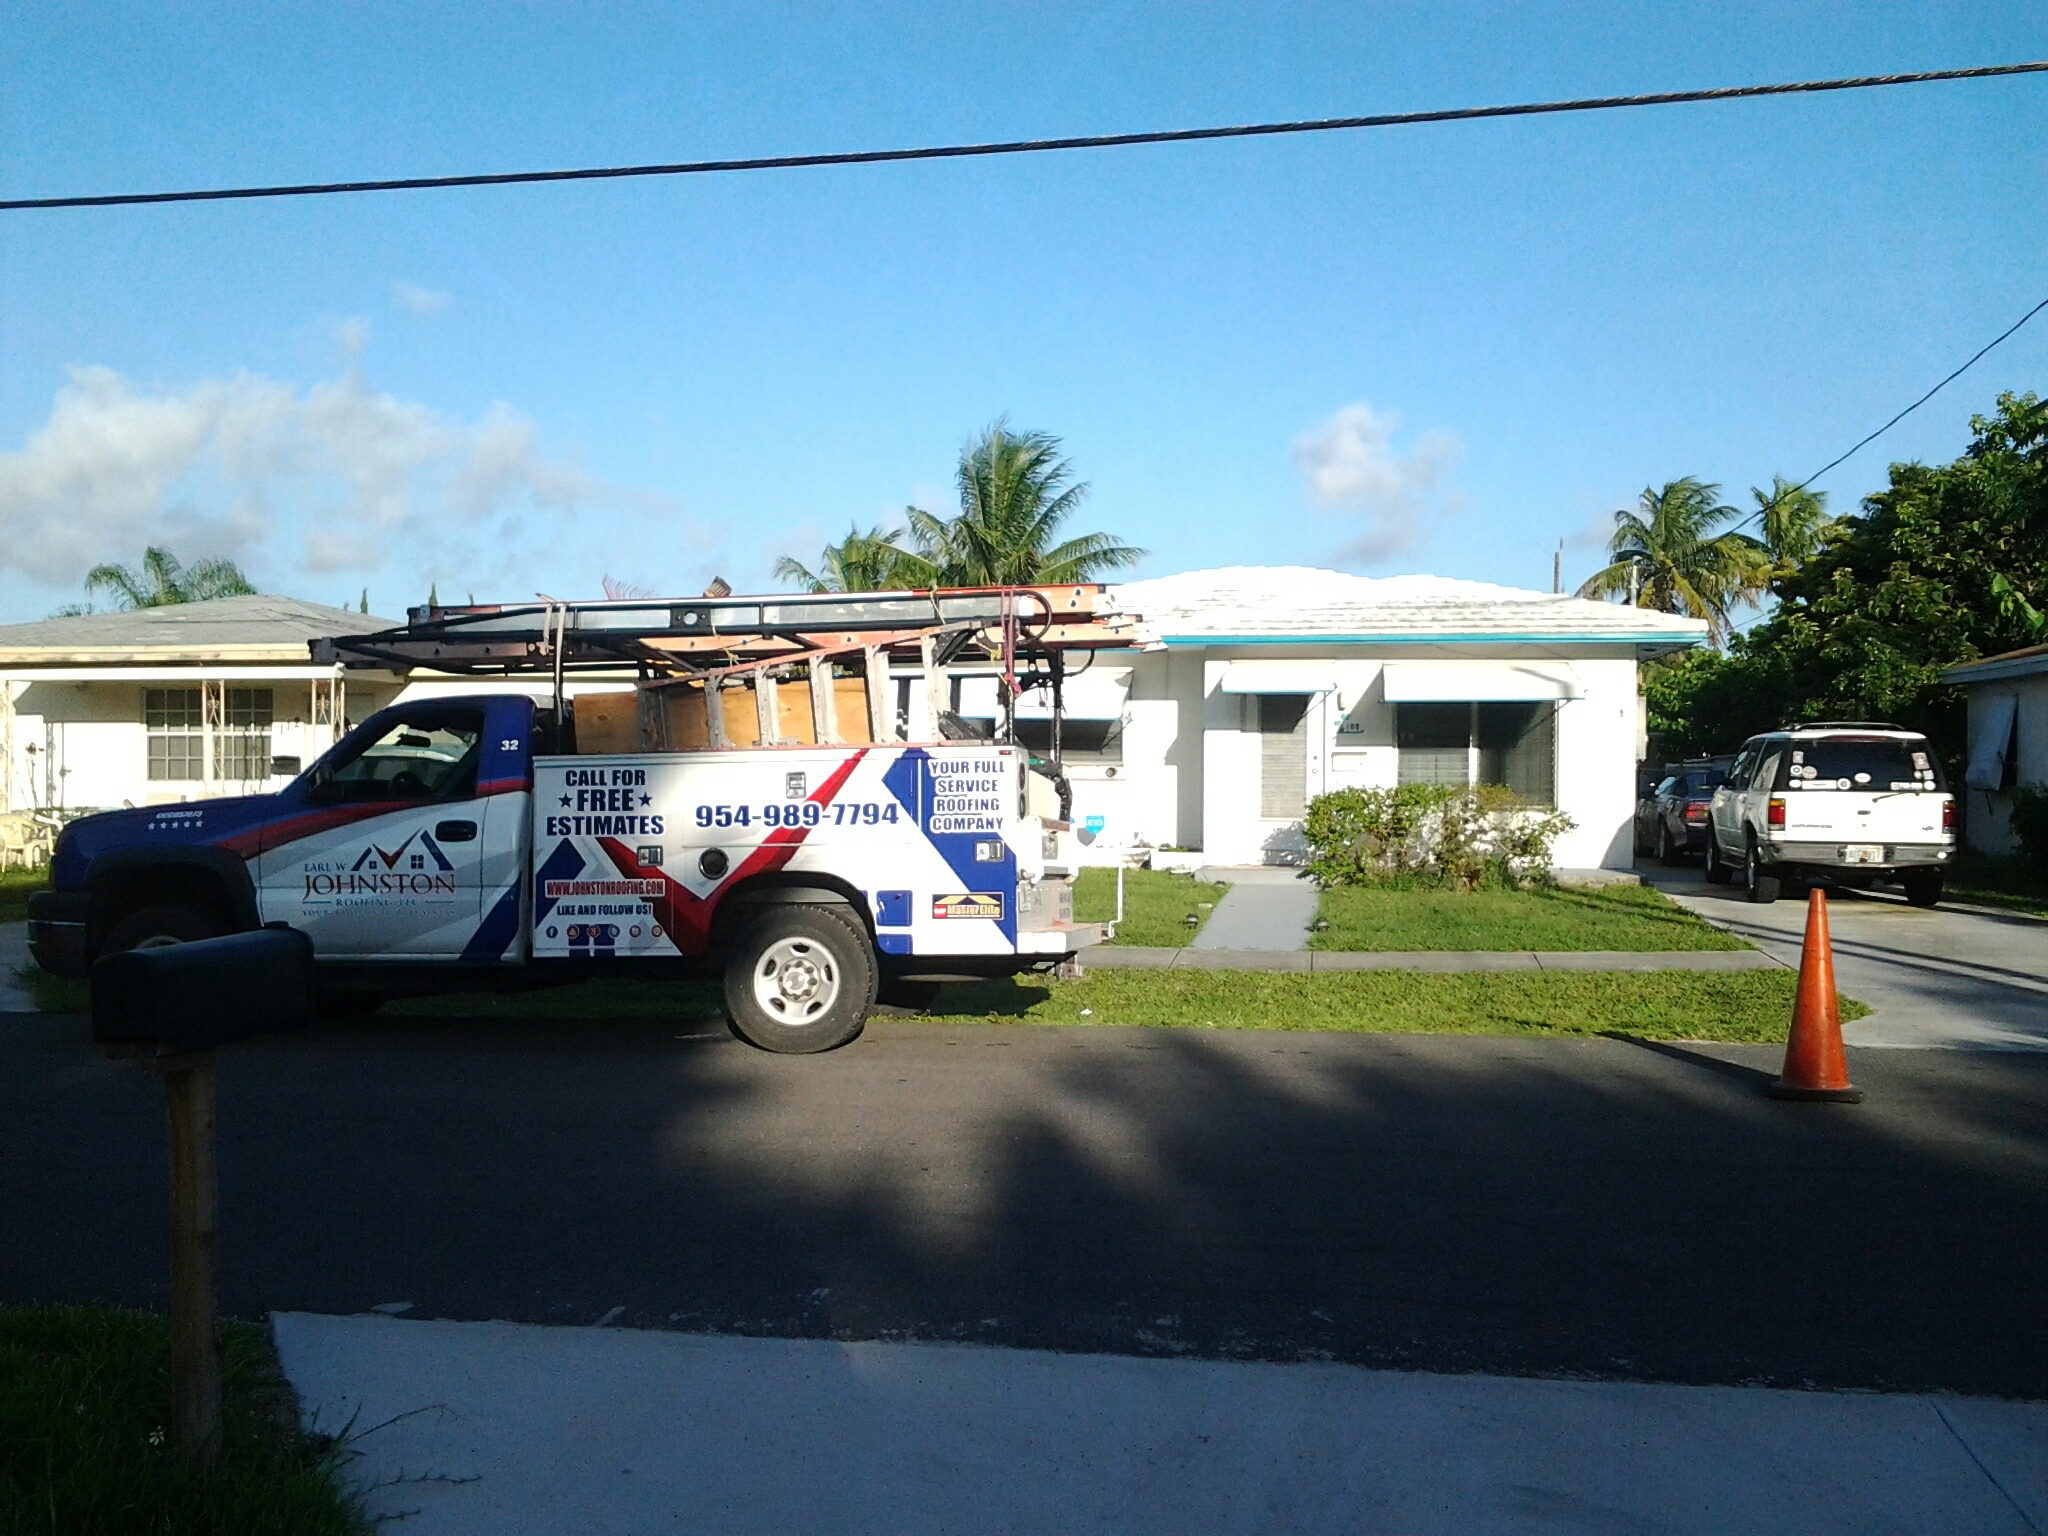 Hallandale Beach, FL - Tile roof repair in the city of Hallandale beach fl this repair is being done by Earl w Johnston roofing company Jos? end Duane are you repair technicians